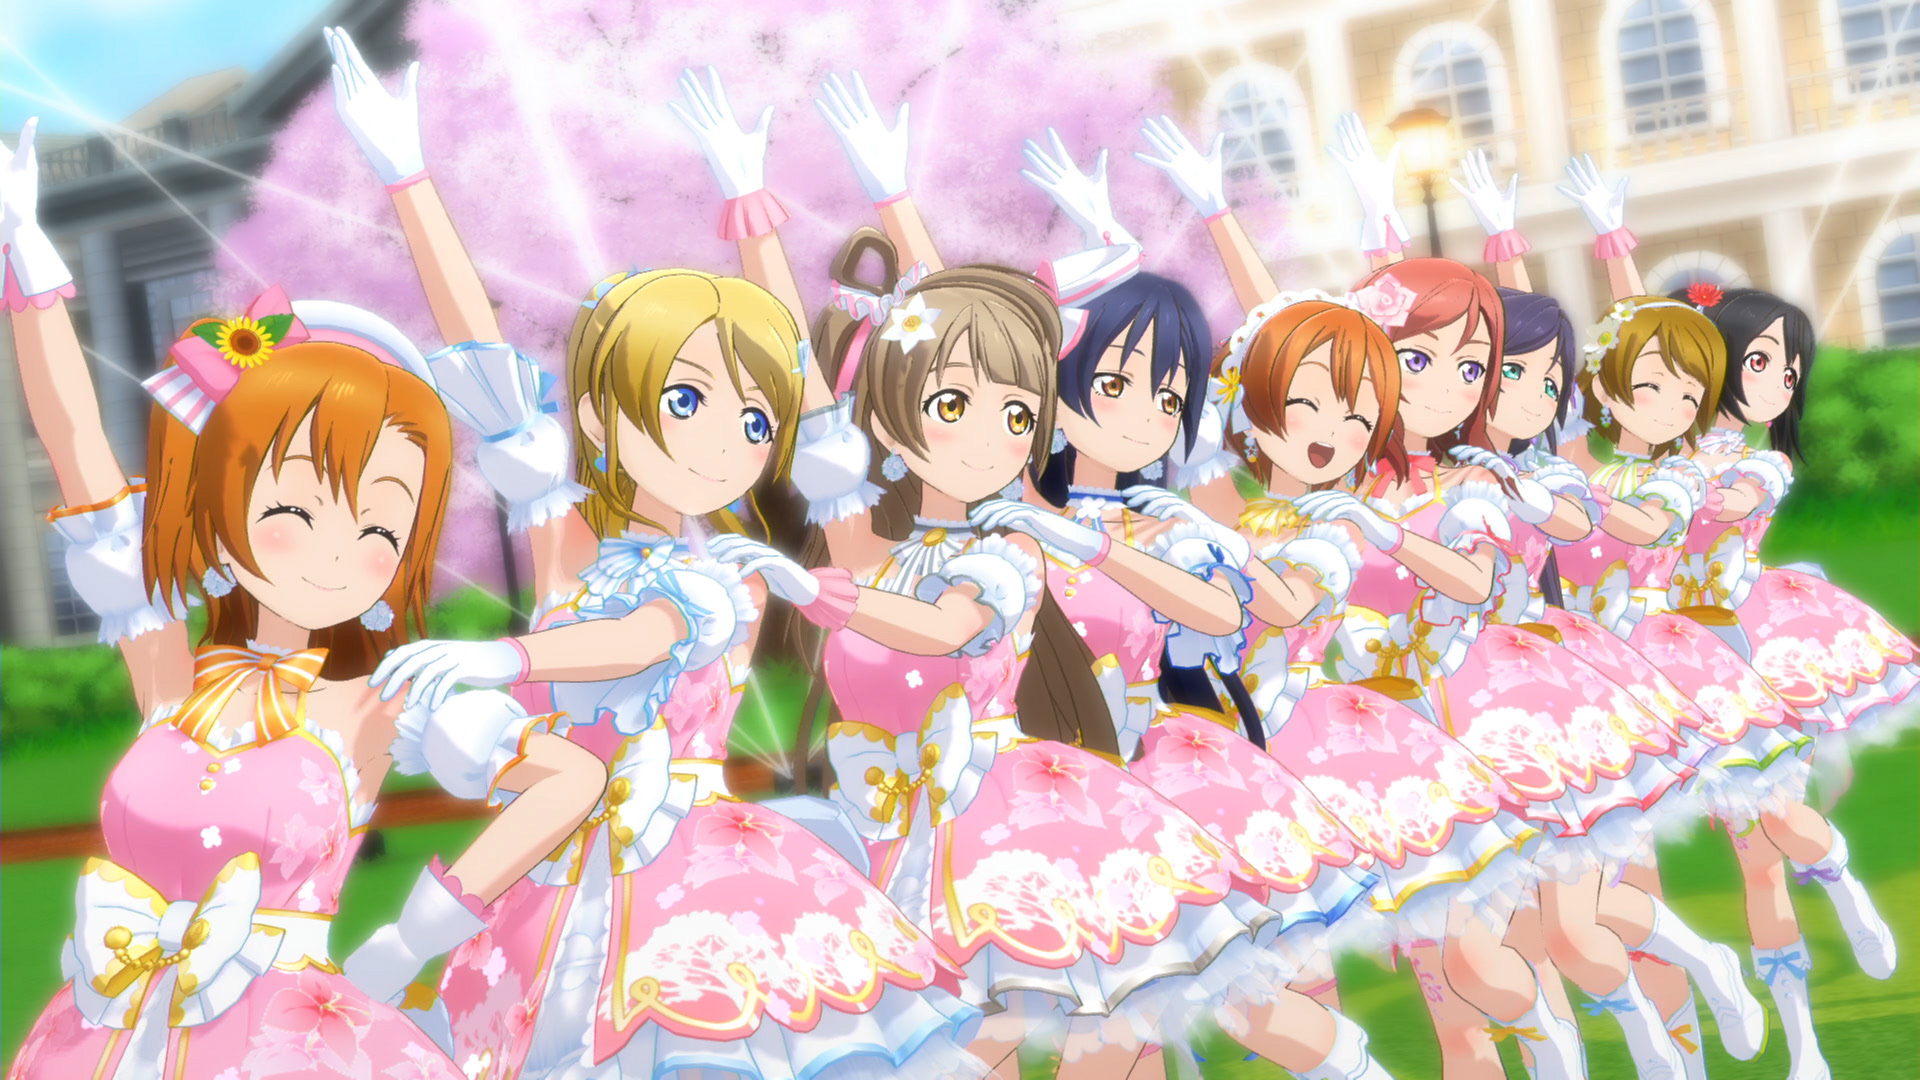 《Love Live!School Idol Festival -after school ACTIVITY- Wai-Wai!Home Meeting》正式推出。